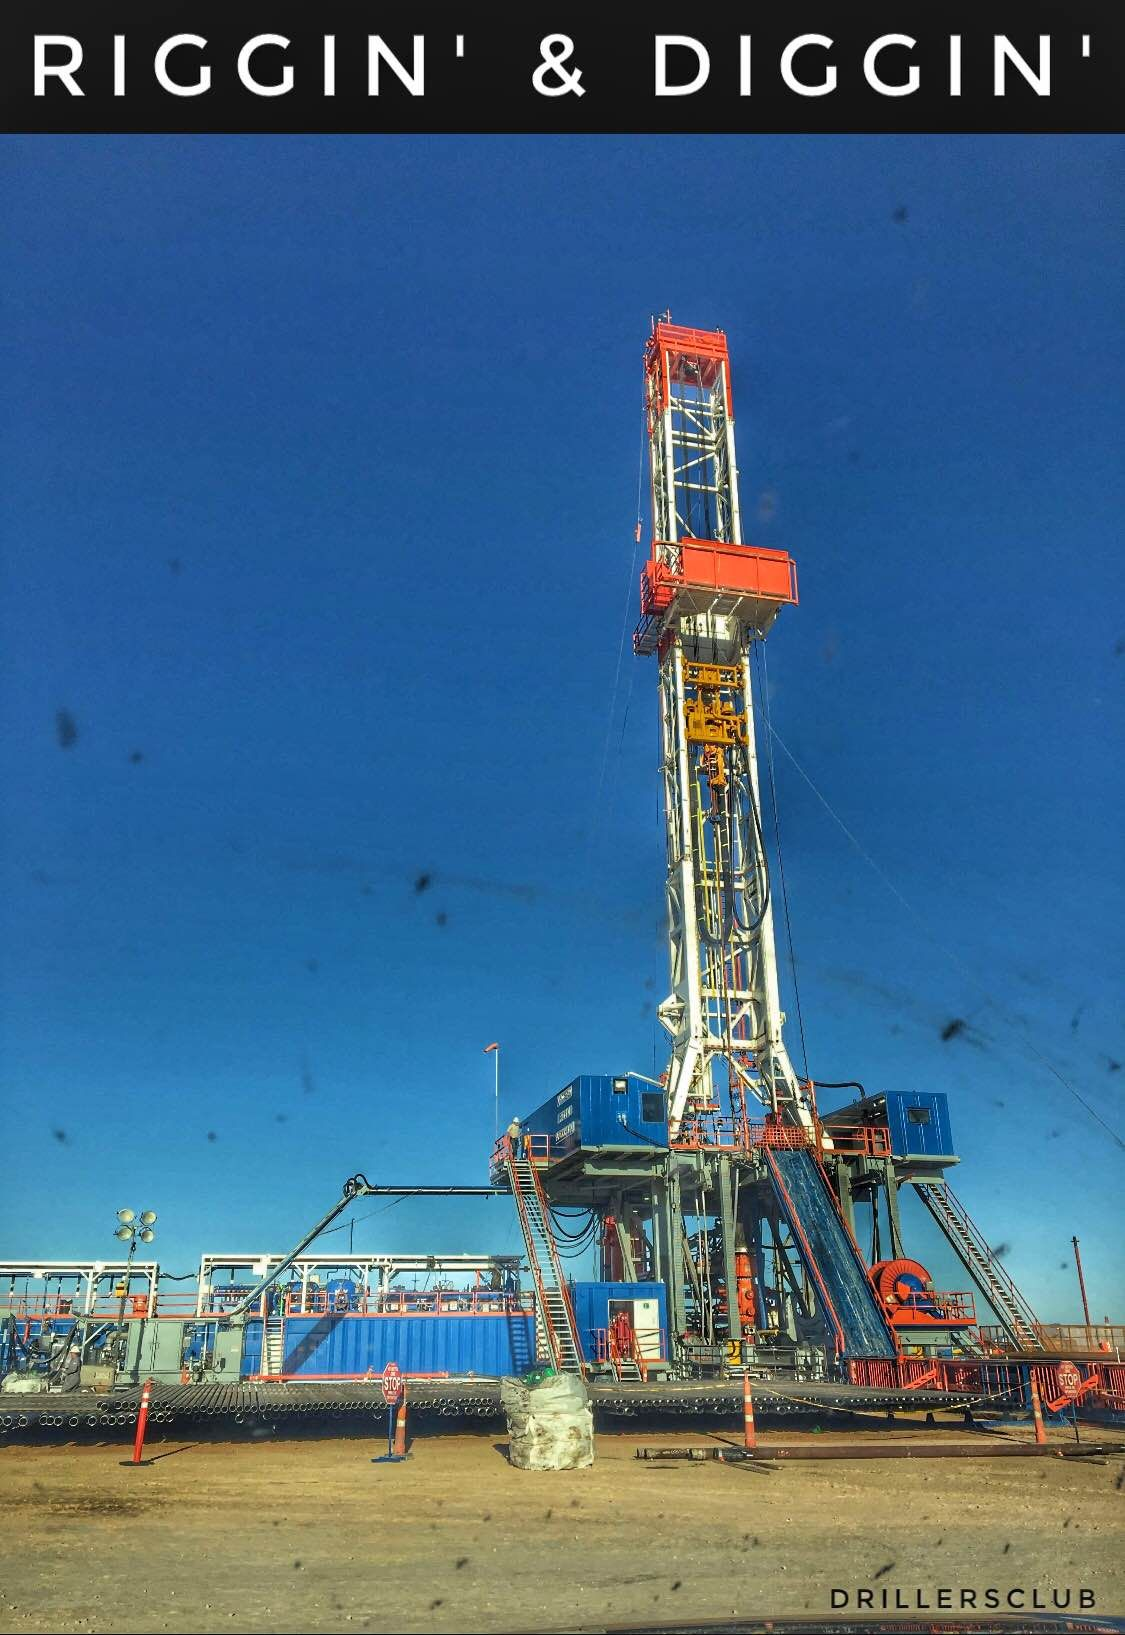 Pin by DWN on Drilling rig Oil platform, Drilling rig